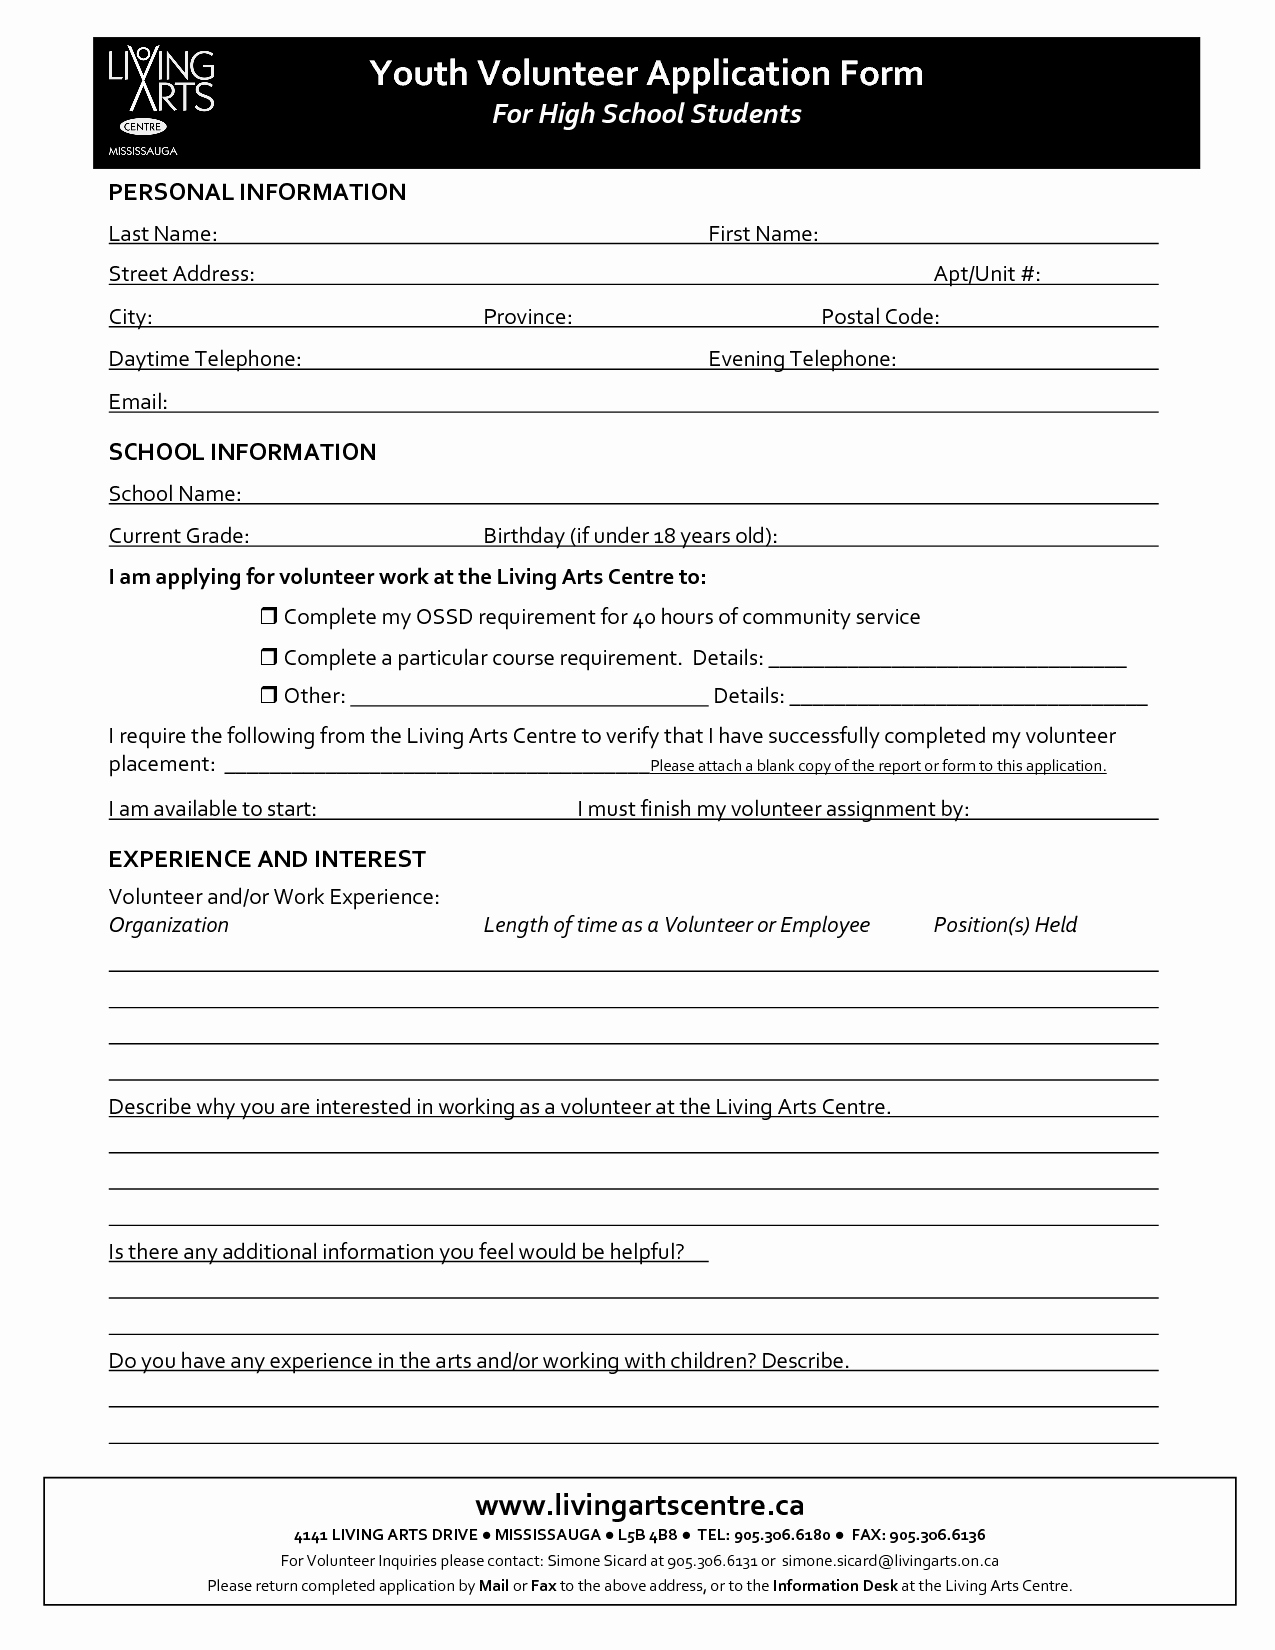 Volunteer Application form Pdf Awesome Best S Of Volunteer Requirements Template Volunteer Application form Template Blank